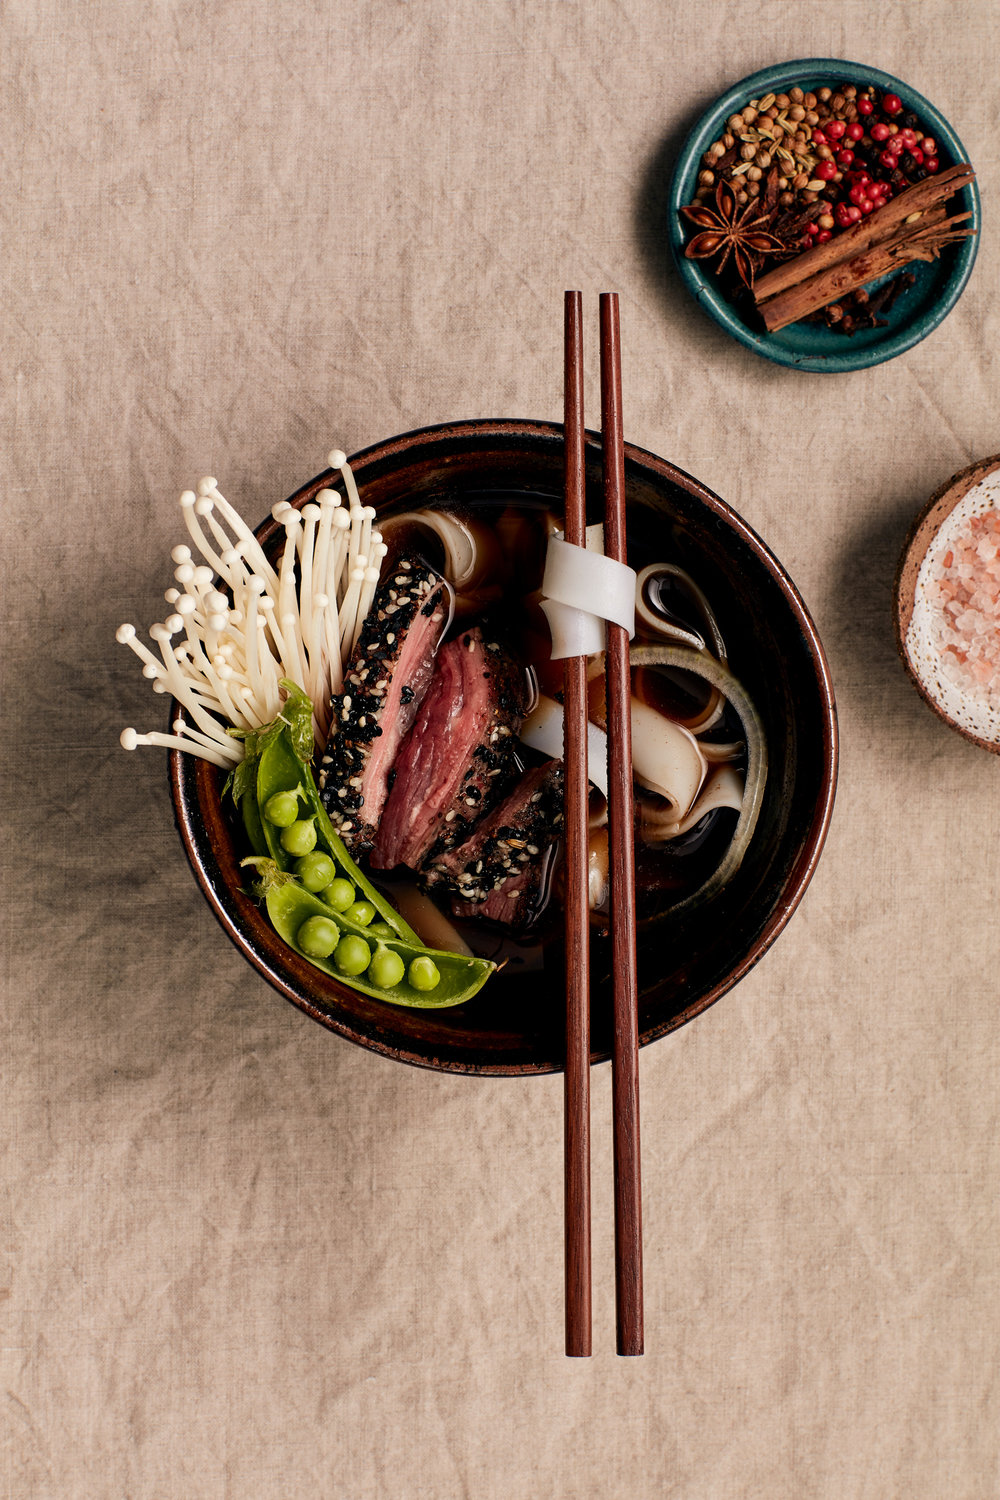 SESAME-CRUSTED BEEF PHO [ART DIRECTION + STYLING]